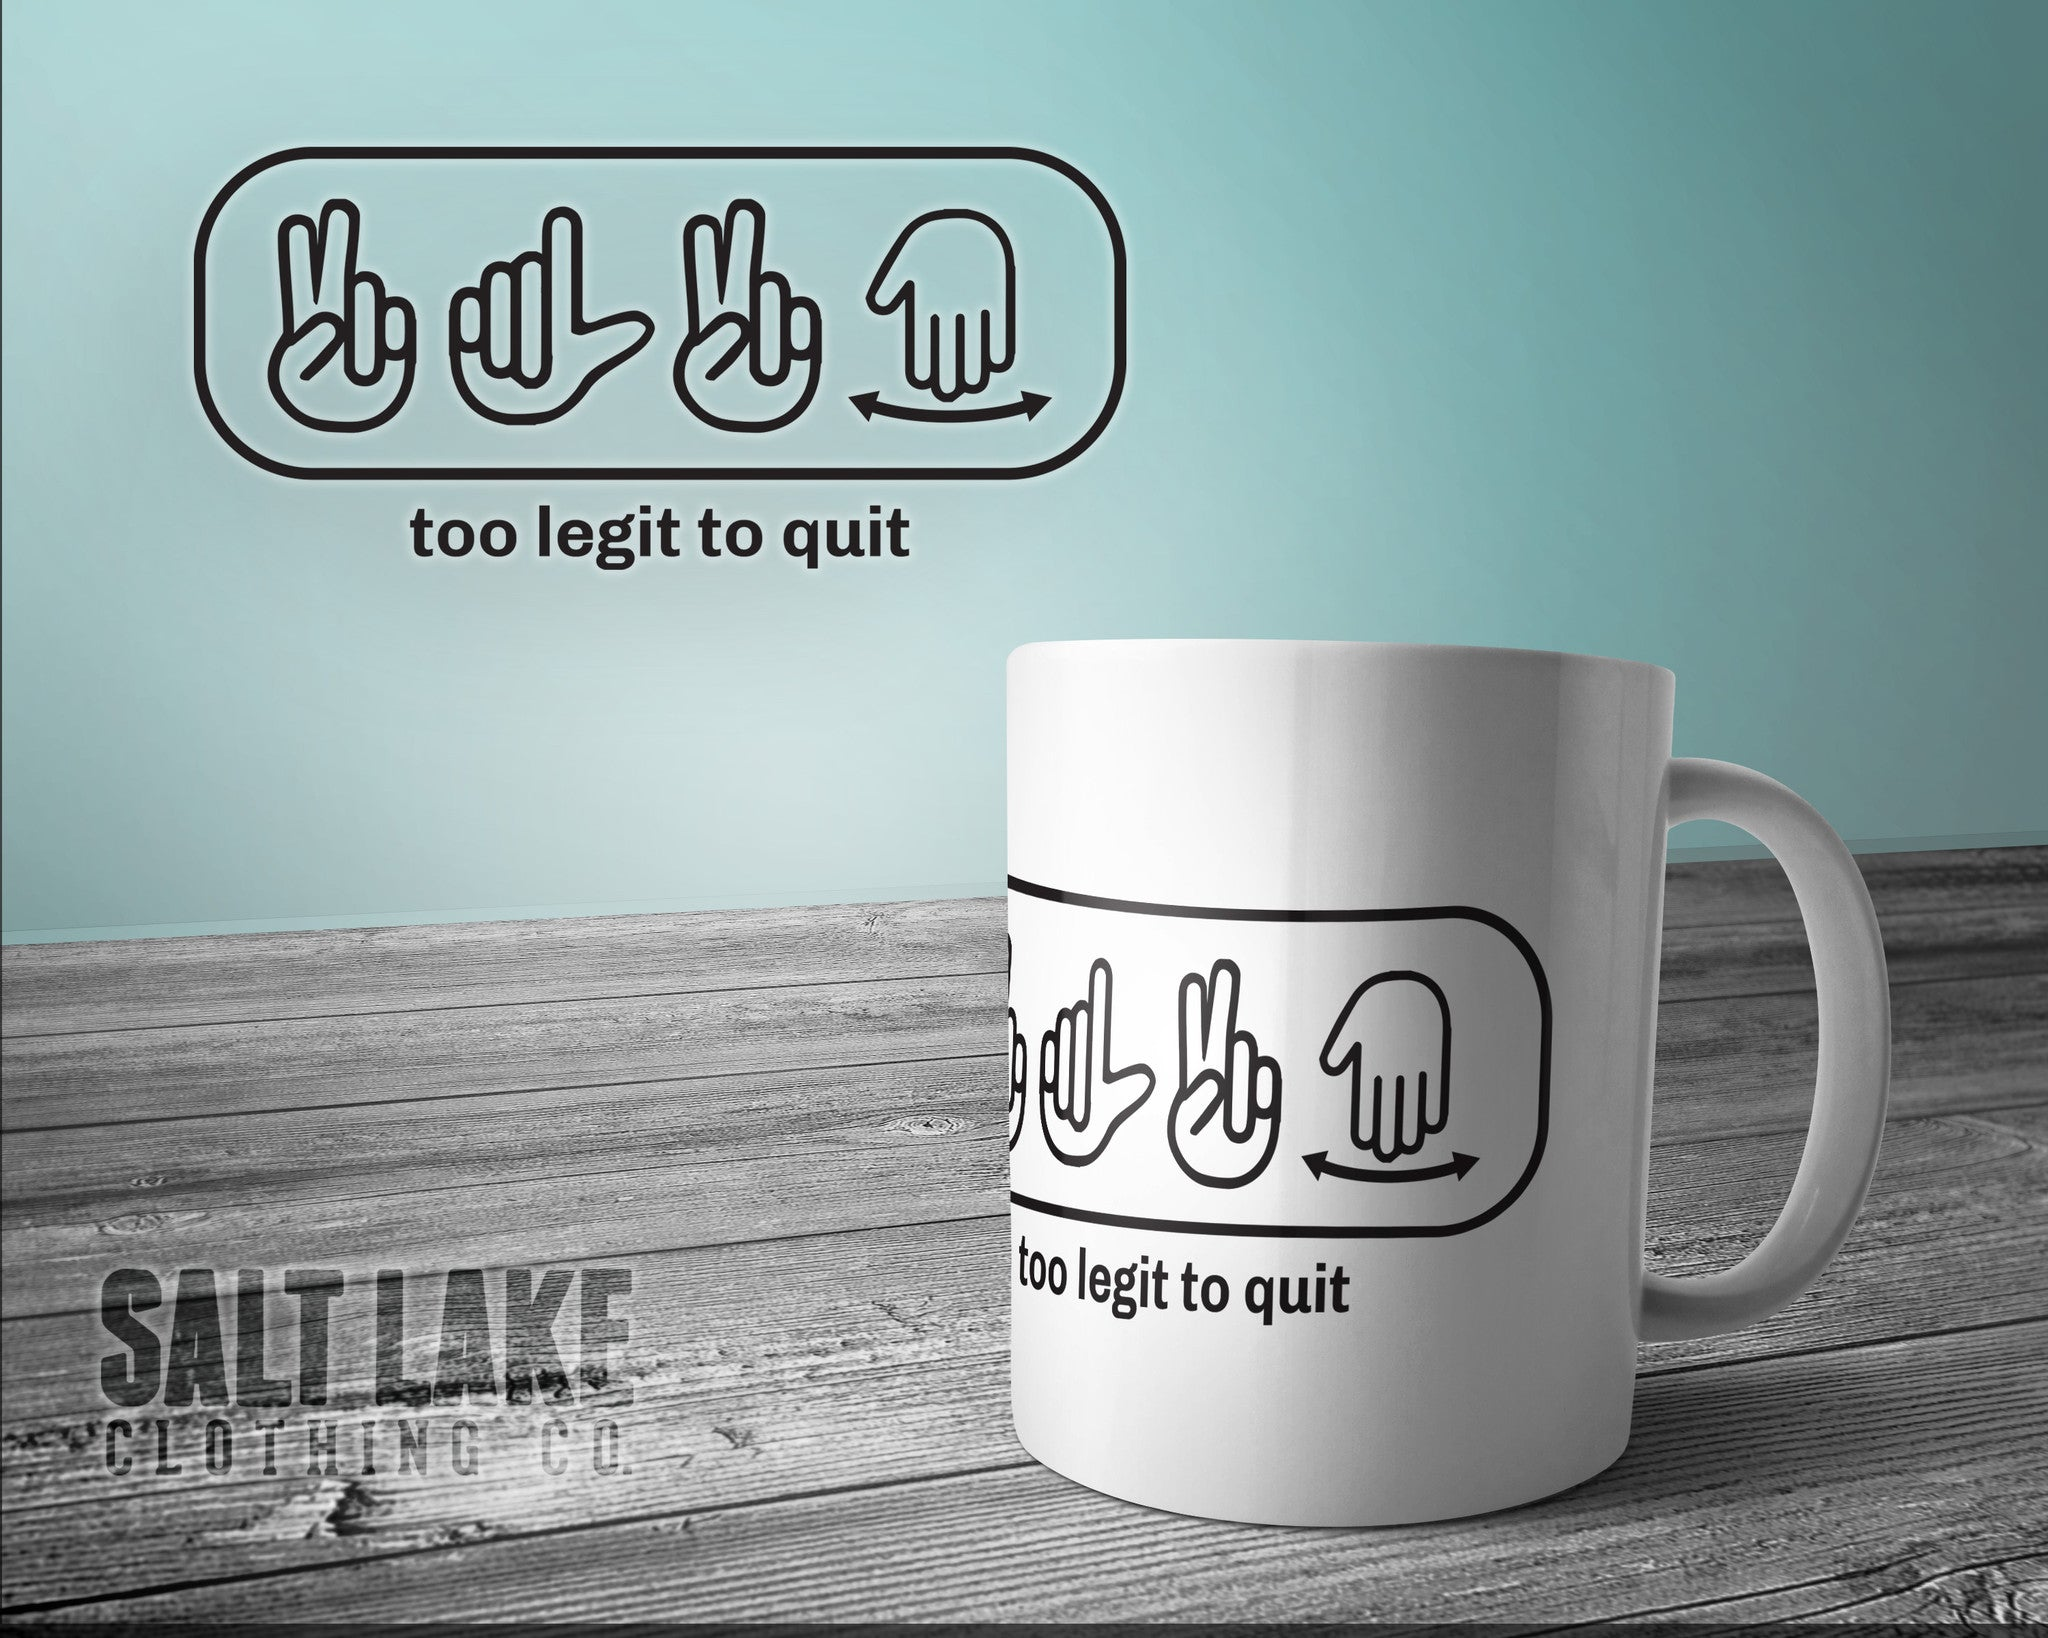 Too Legit To Quit Ceramic 11 0z. Coffee Mug